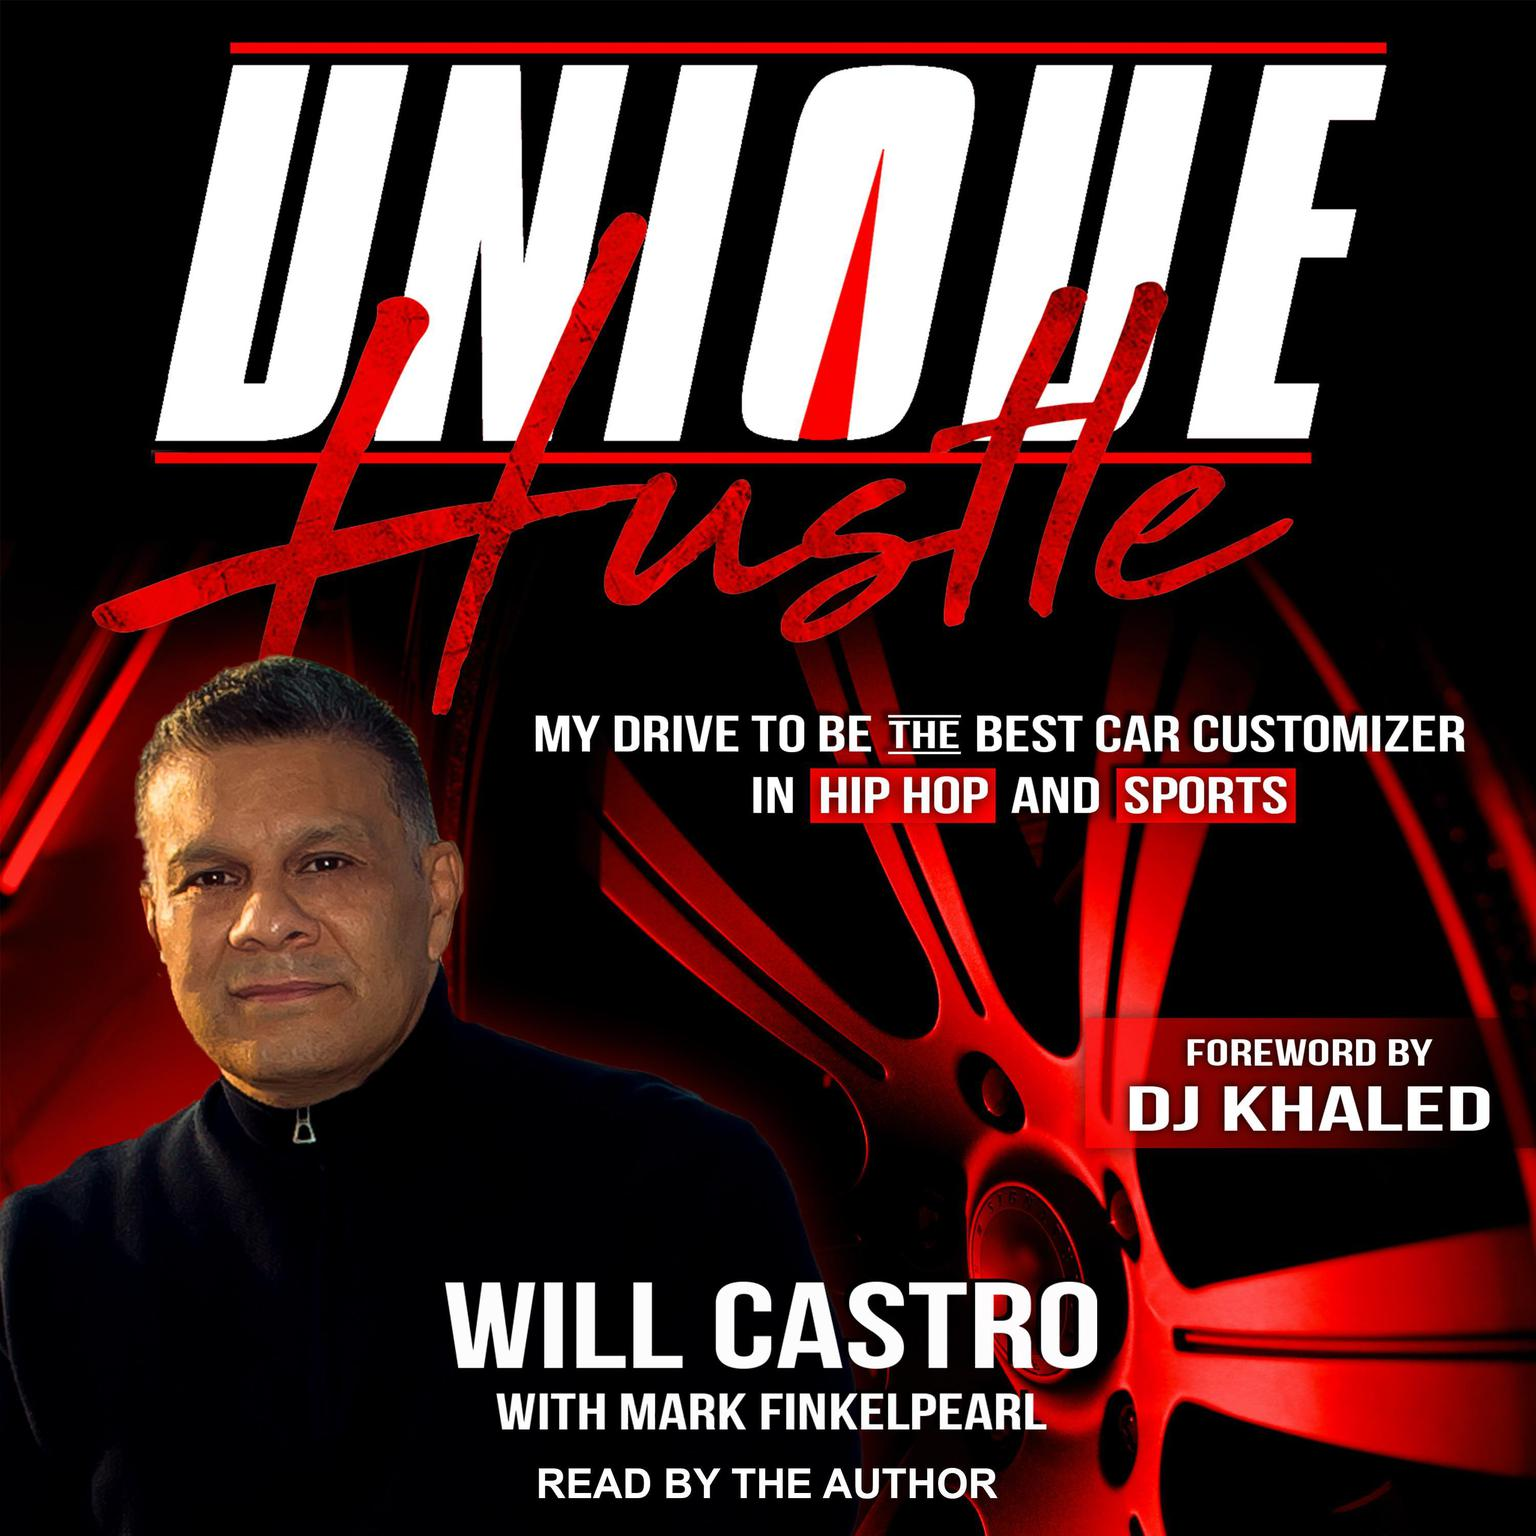 Printable Unique Hustle: My Drive to be the Best Car Customizer in Hip Hop and Sports Audiobook Cover Art